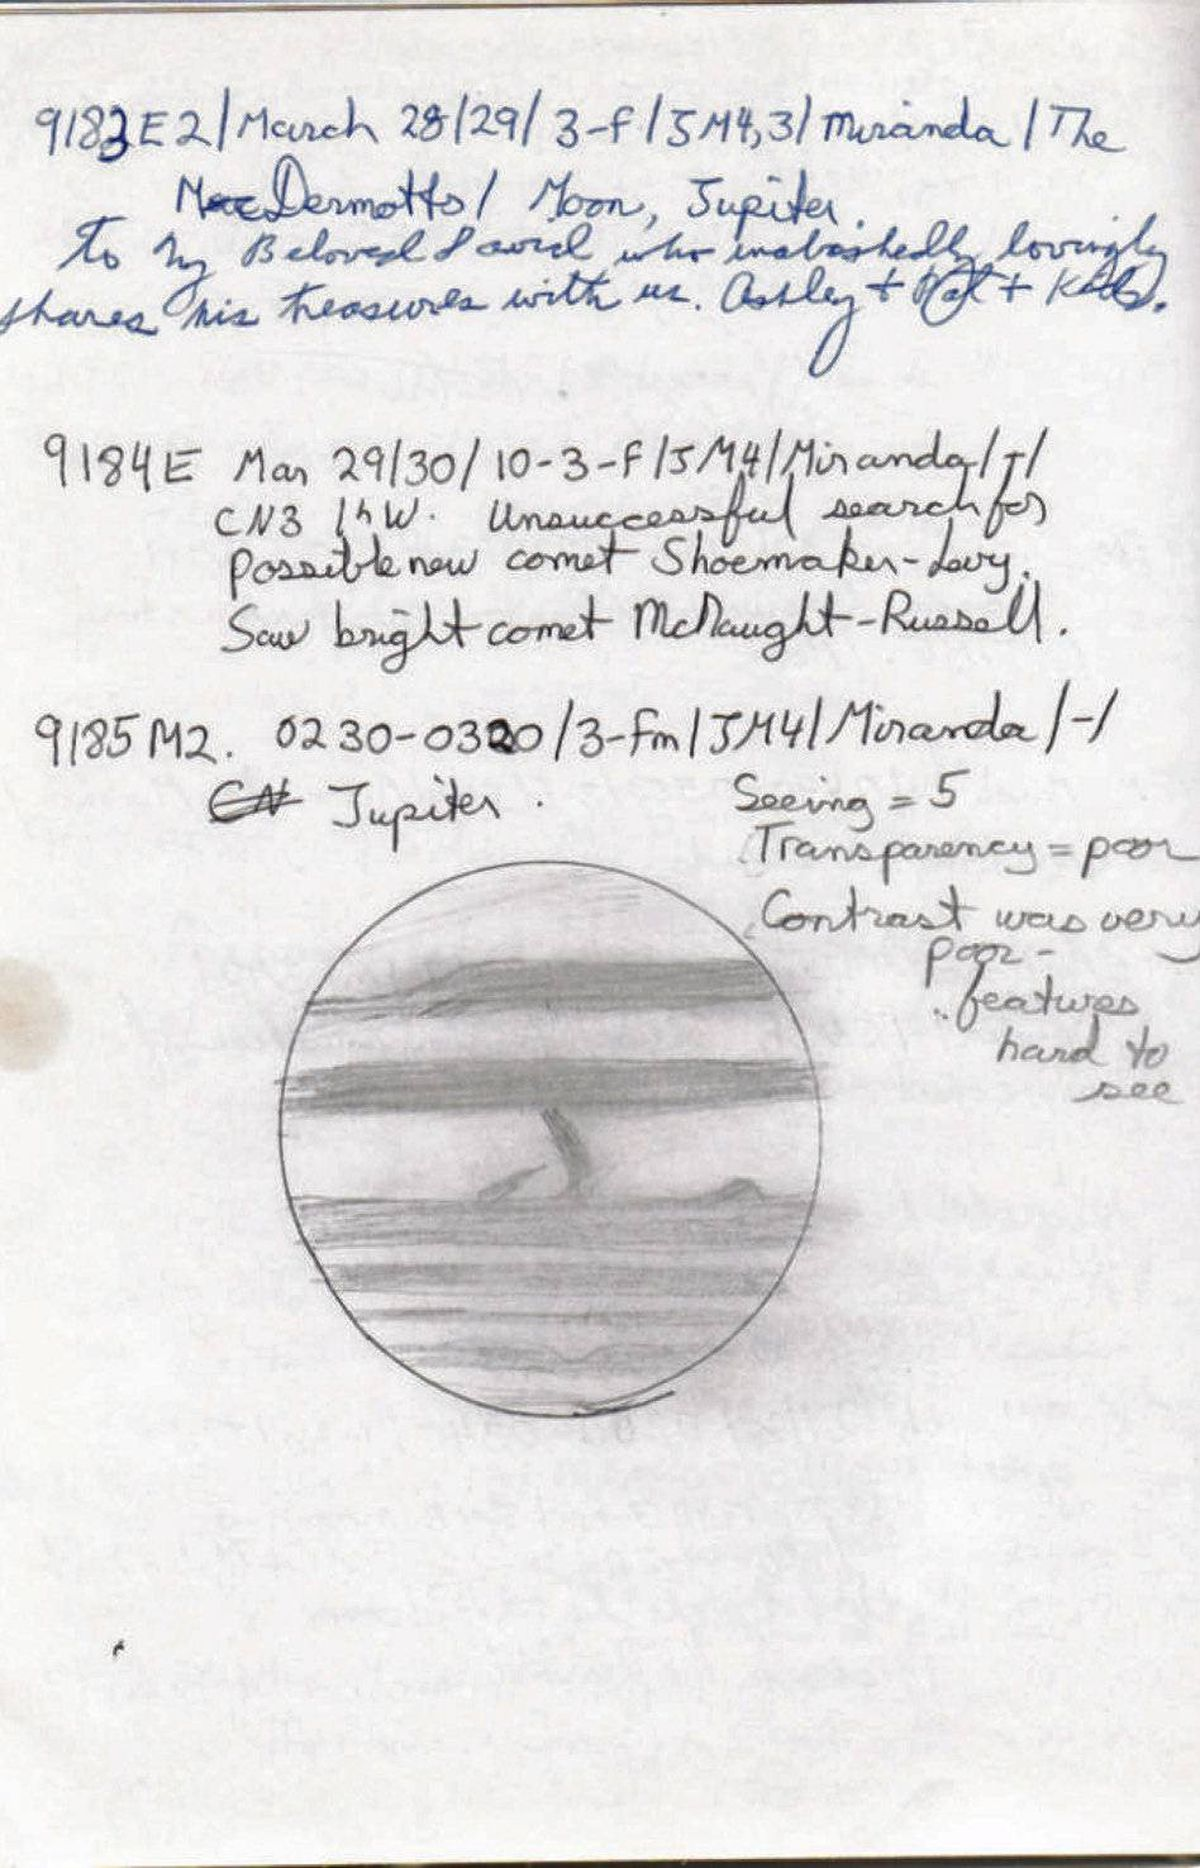 1995-96 observing notes